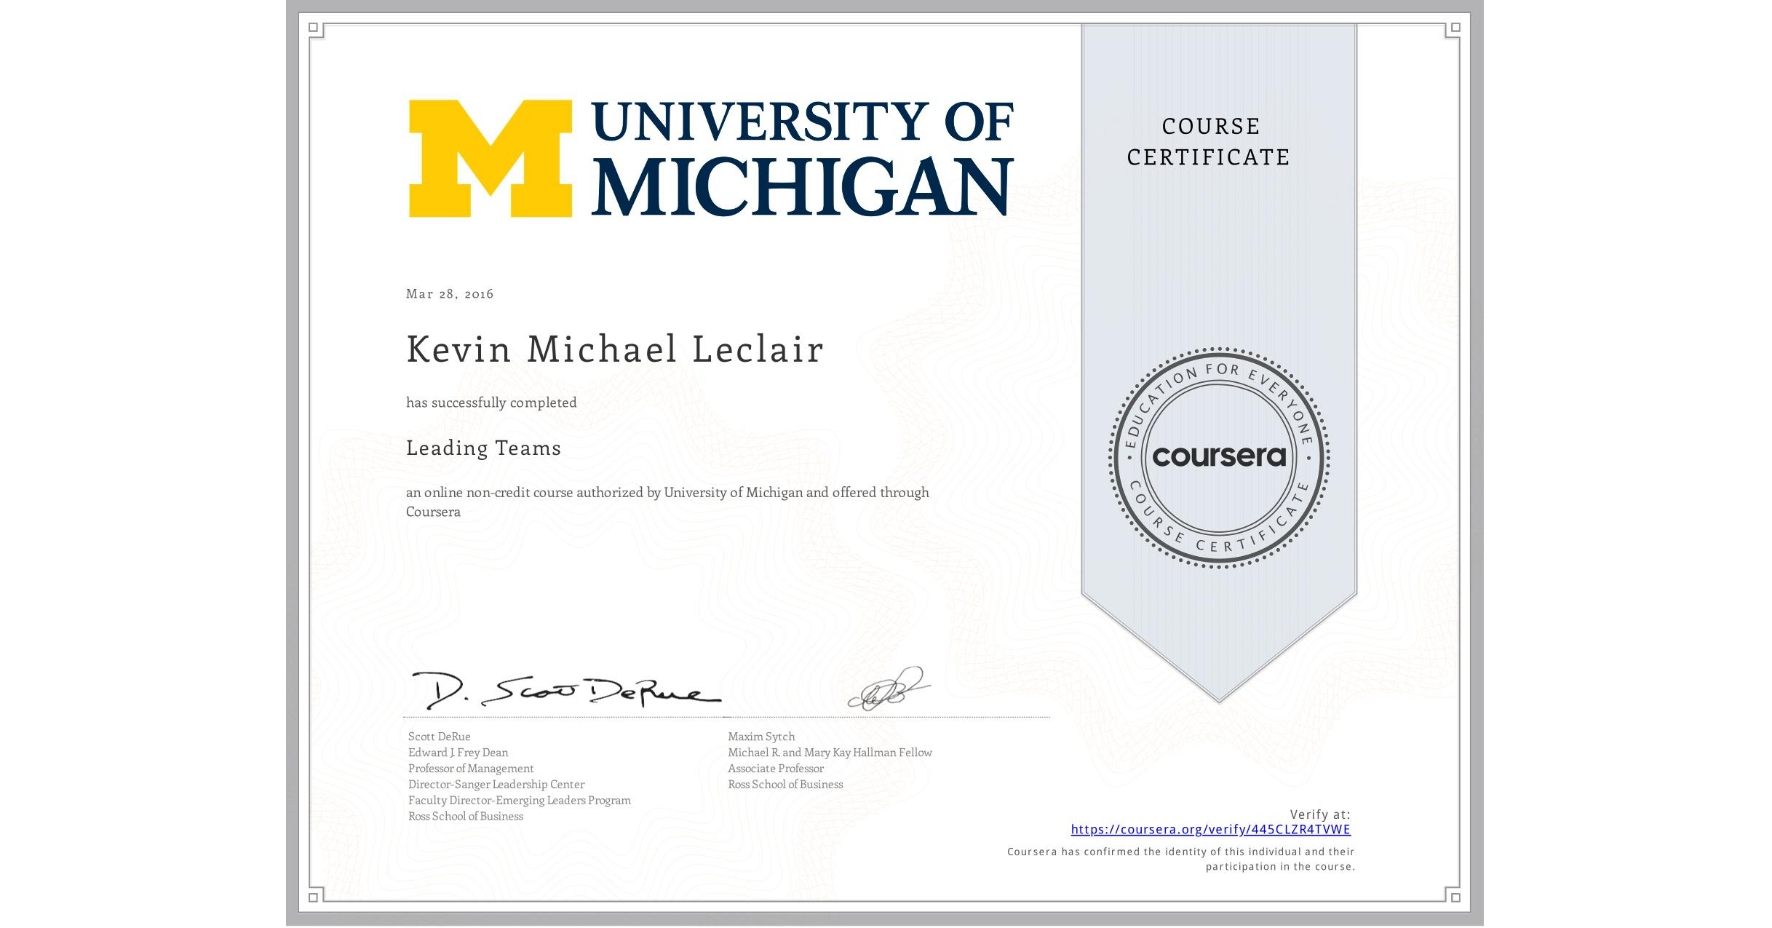 View certificate for Kevin Michael Leclair, Leading Teams, an online non-credit course authorized by University of Michigan and offered through Coursera